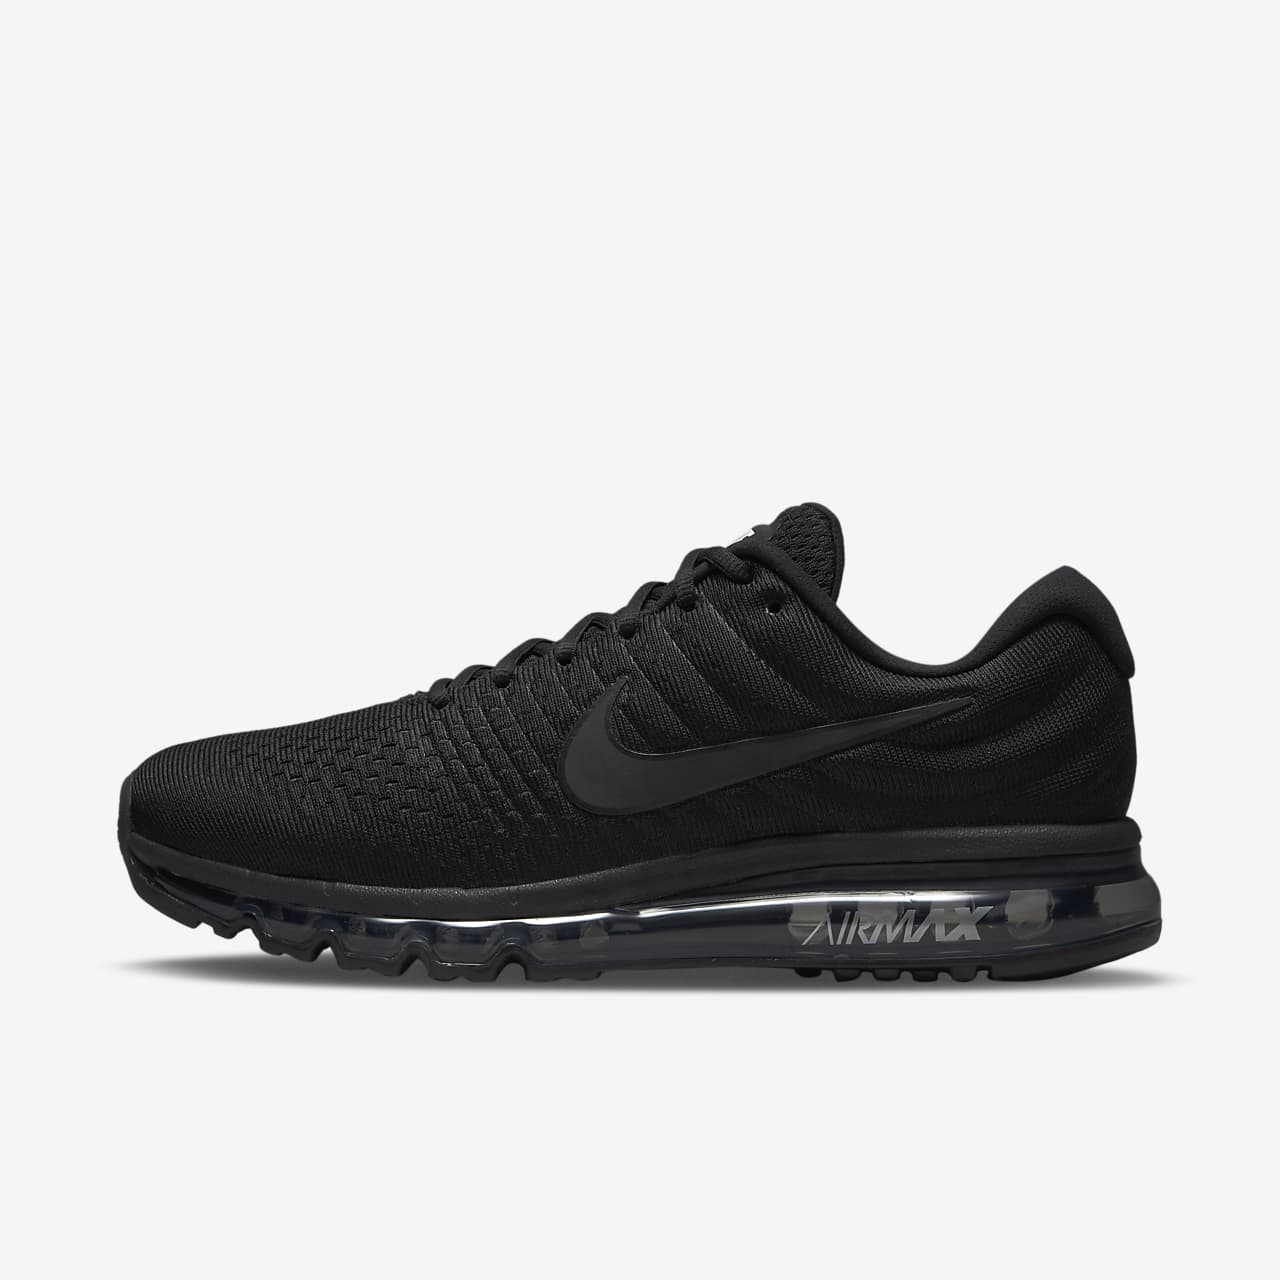 nike air max zapatillas tuned 2017